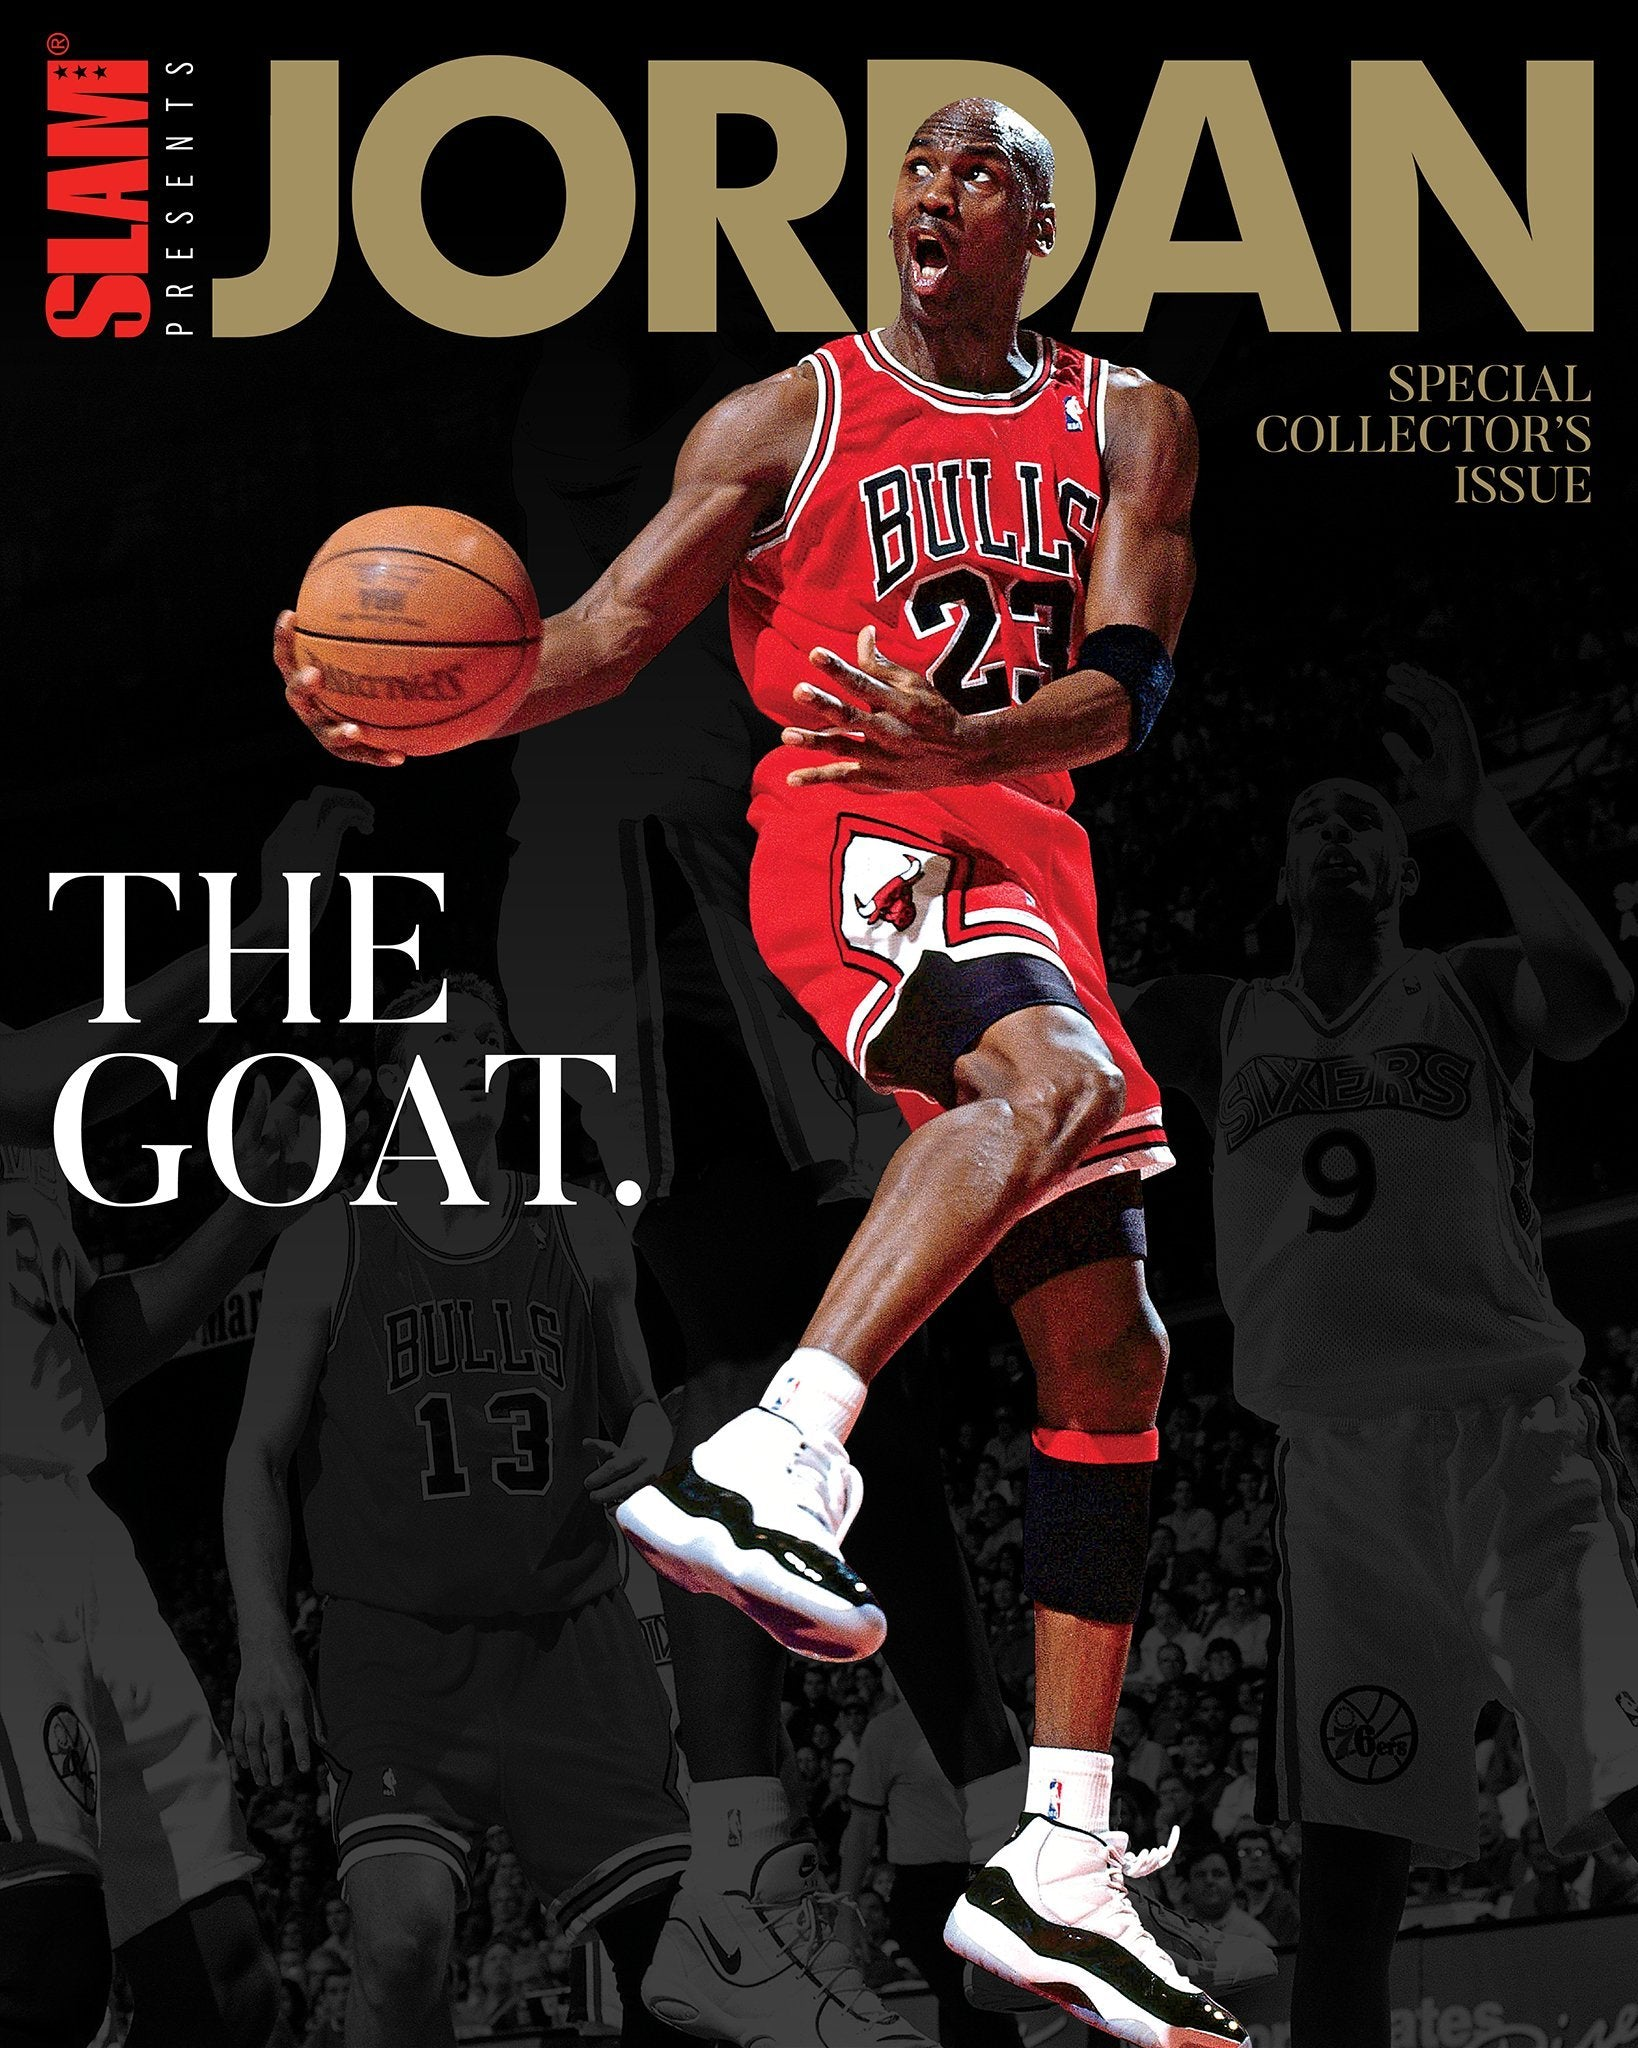 SLAM Presents: Jordan The Special Collectors Issue - SLAM